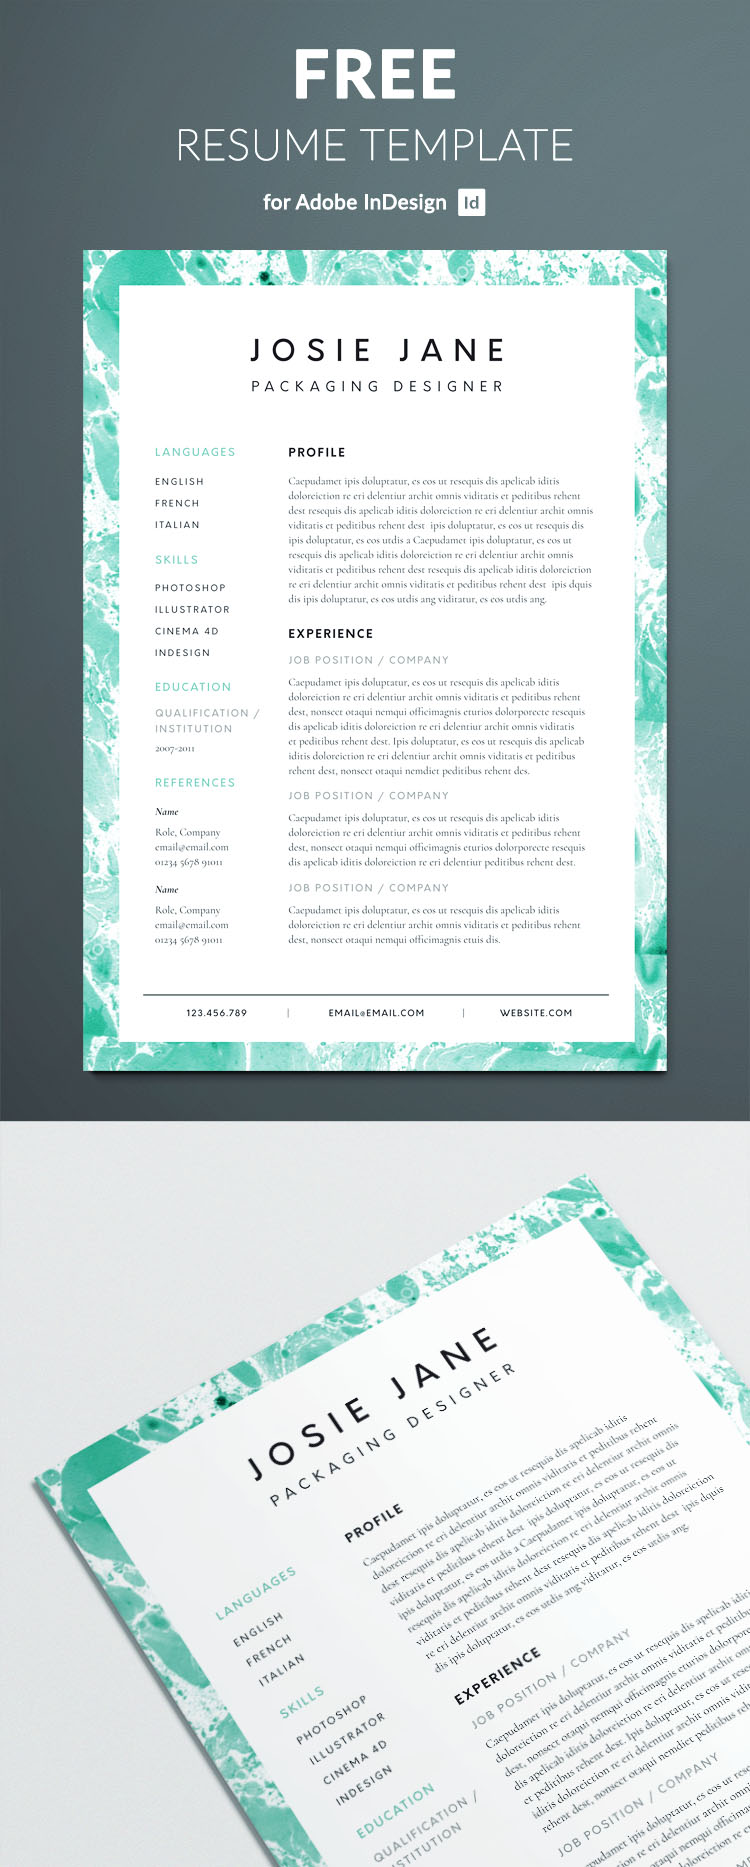 indesign cs6 resume templates